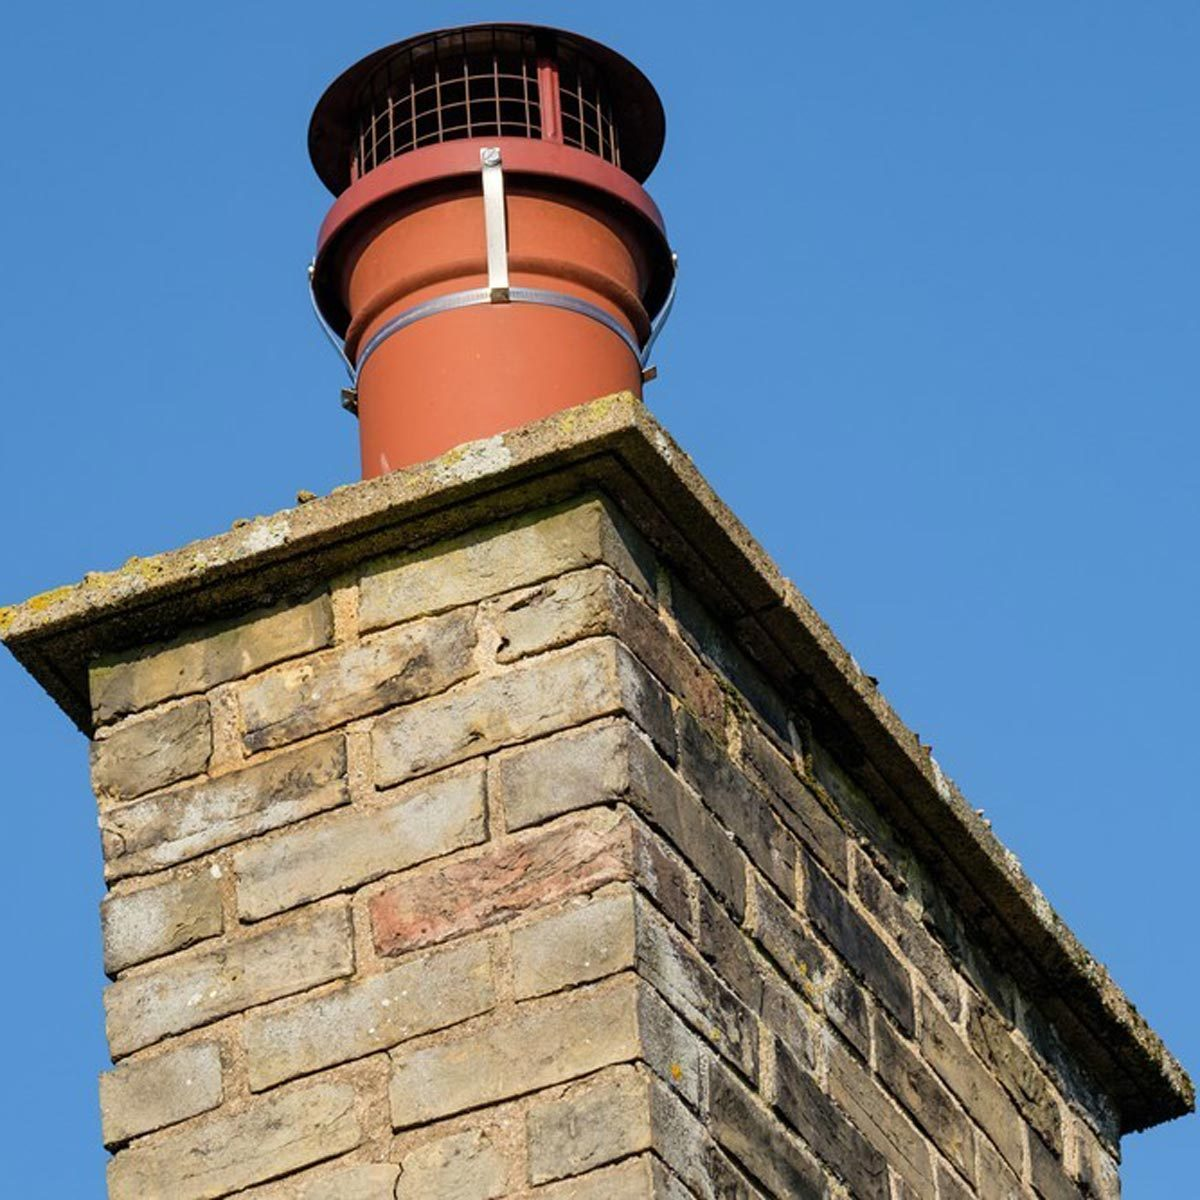 Make Sure the Chimney Exhaust Flue is Clear